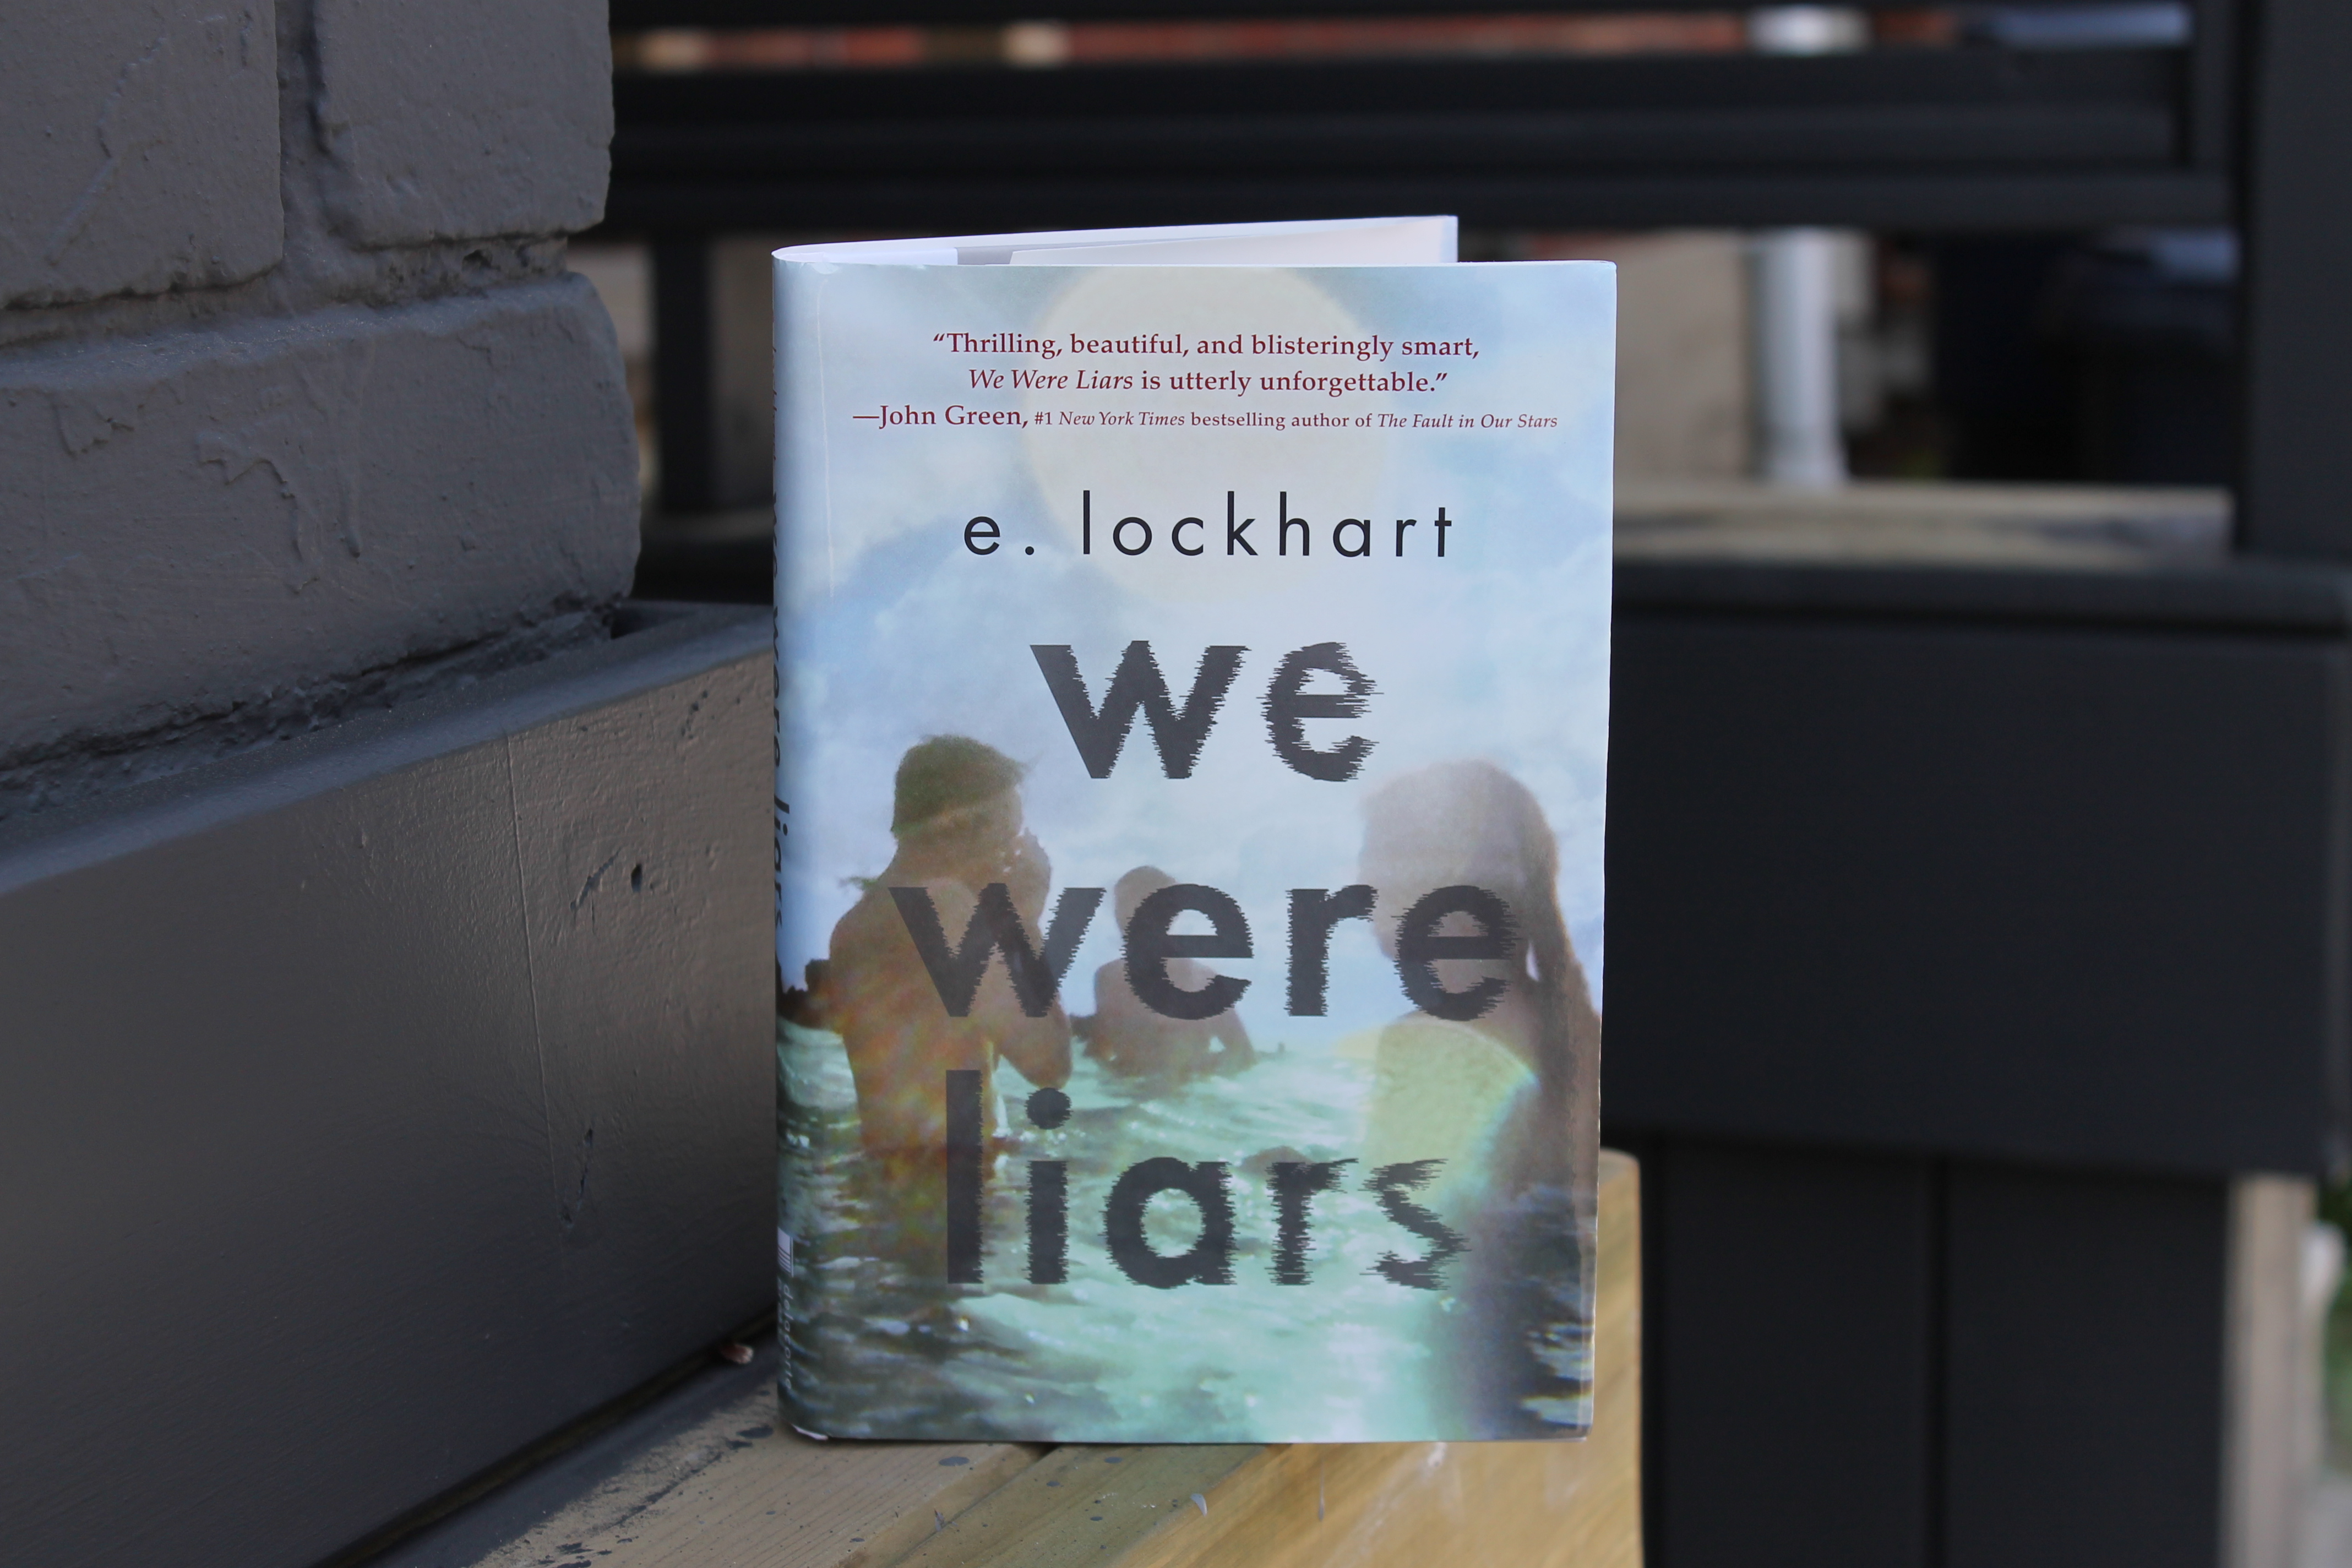 Book Review: We Were Liars by E  Lockhart - Youth Are Awesome